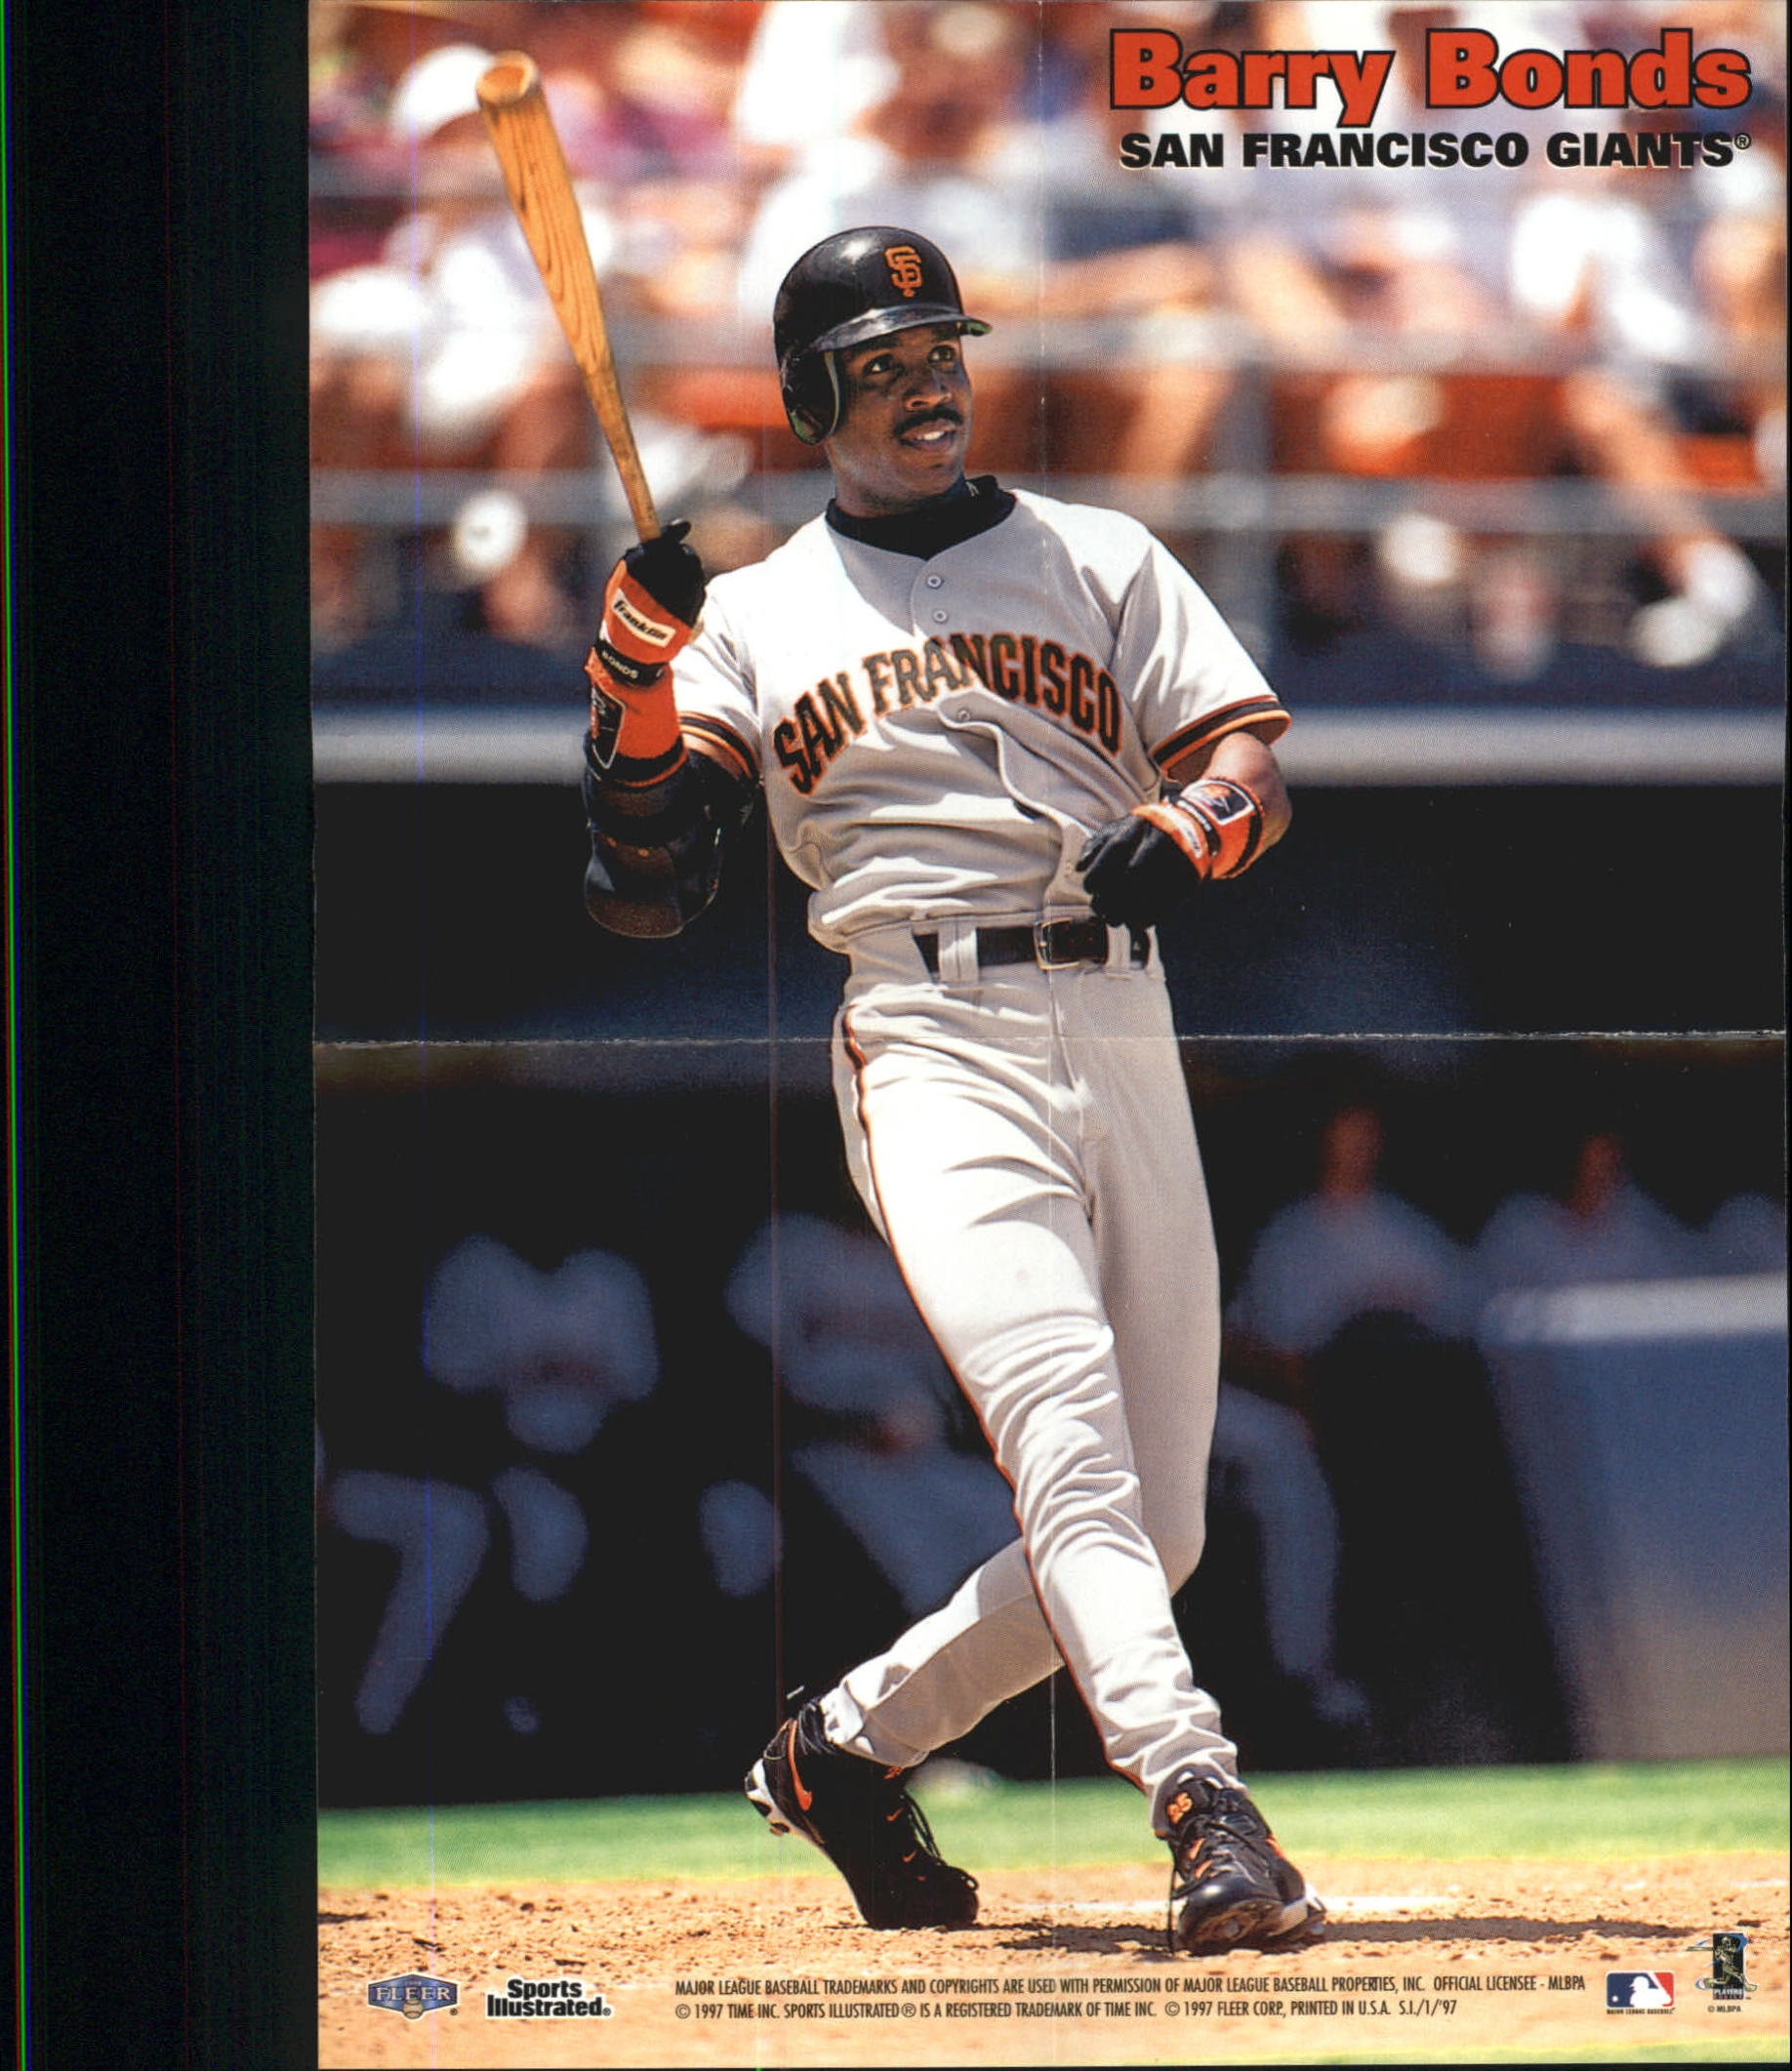 1997 Sports Illustrated Great Shots #20 Barry Bonds